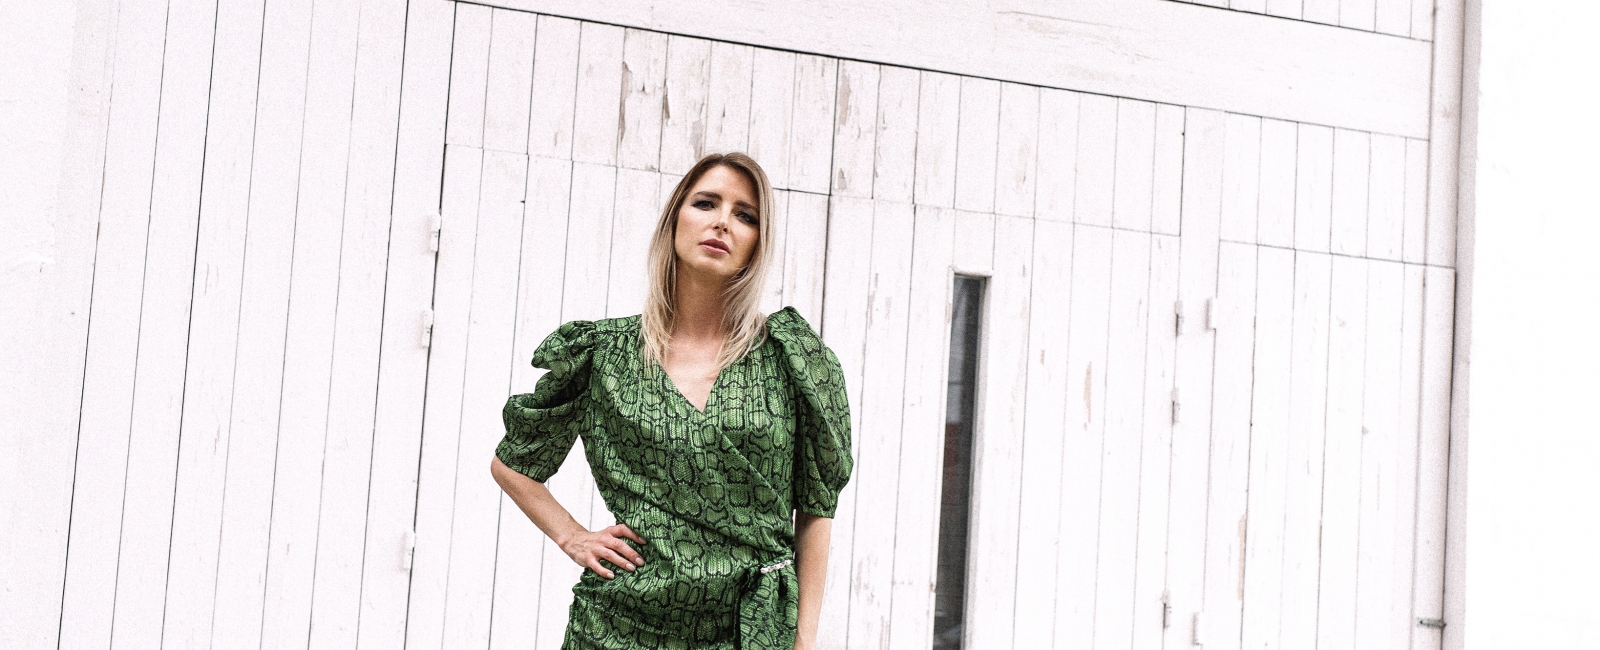 MOD-by-Monique-Fashion-Looks-Eat-Your-Greens-Birgitte-Herskind-Copenhagen